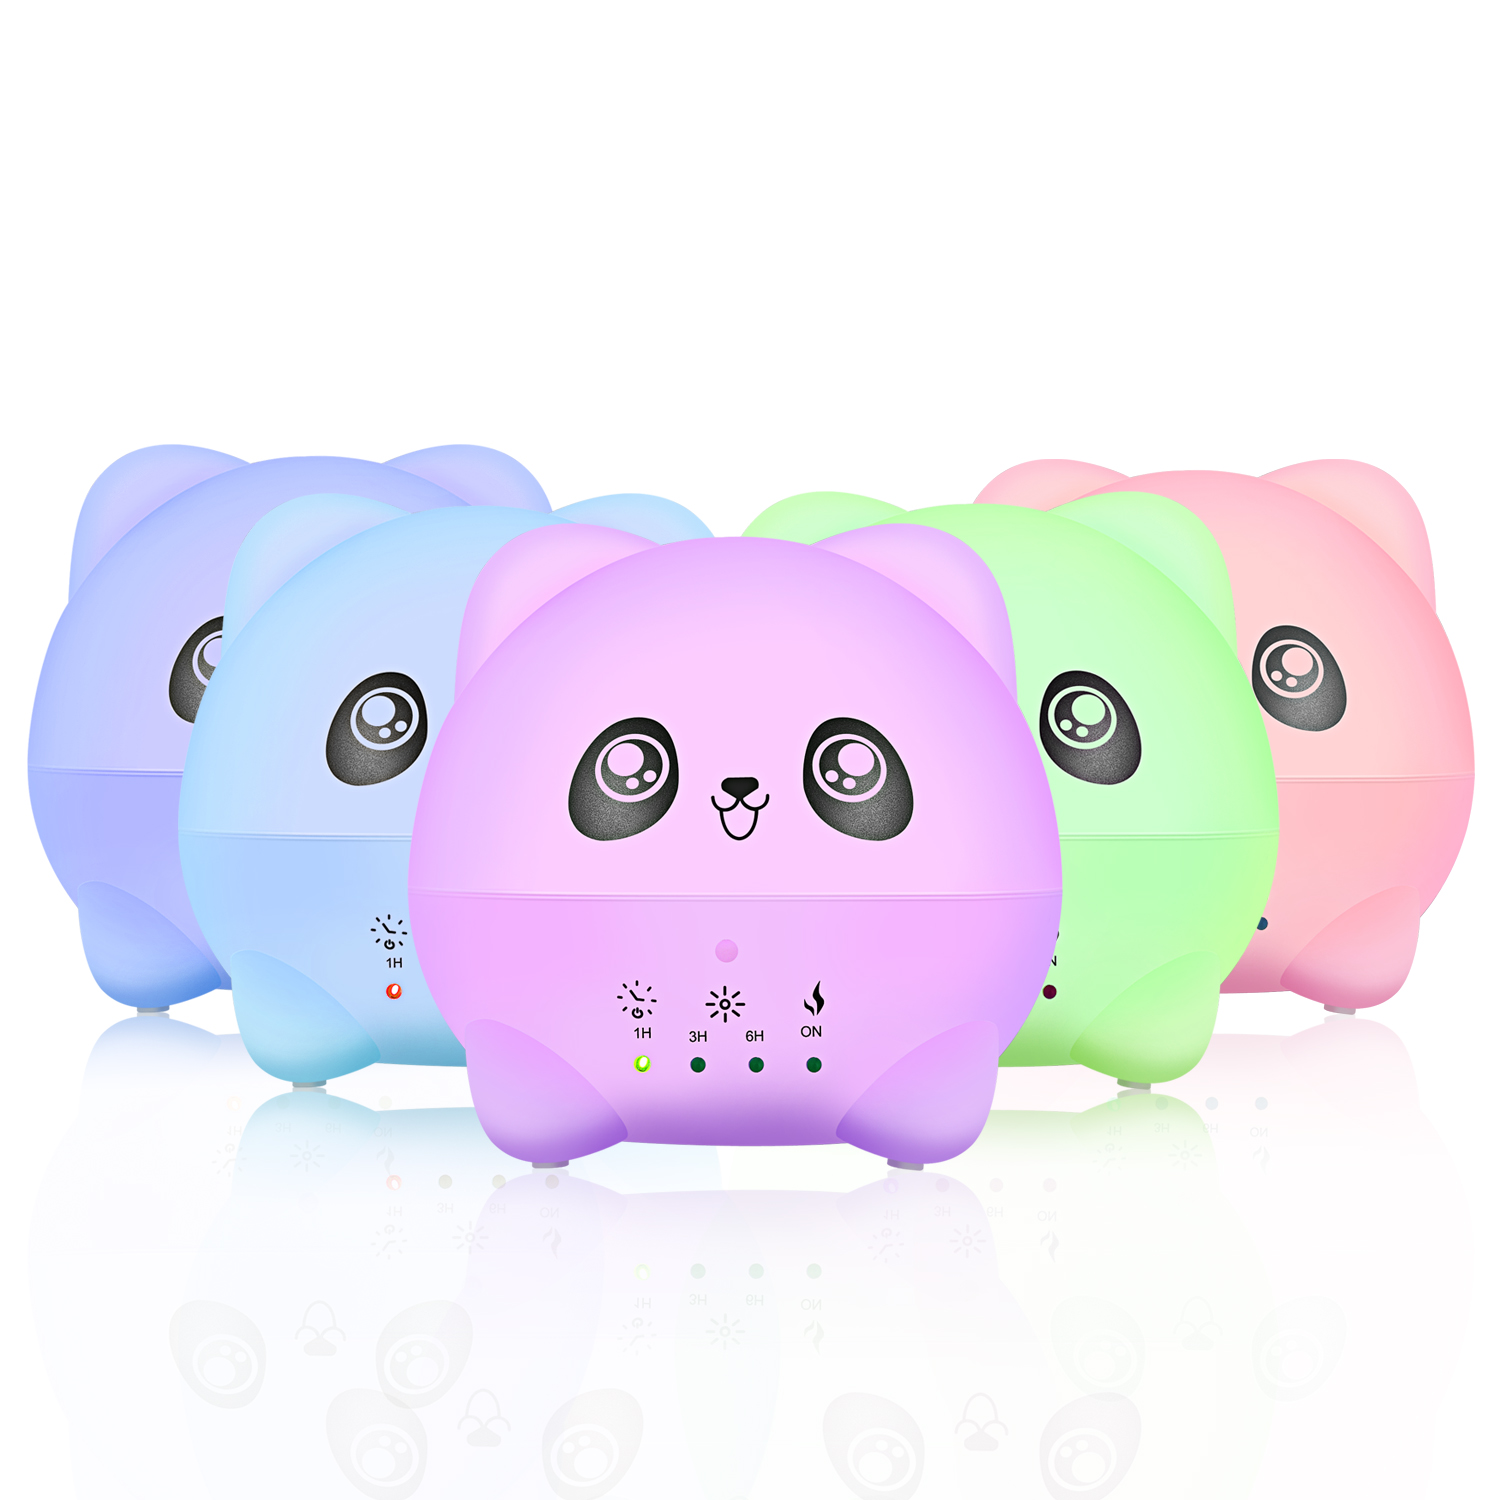 300ml Ultrasonic Oil Aroma Diffuser Air Humidifier With LED Lights Electric Aromatherapy Essential Panda Cartoon for Home Office